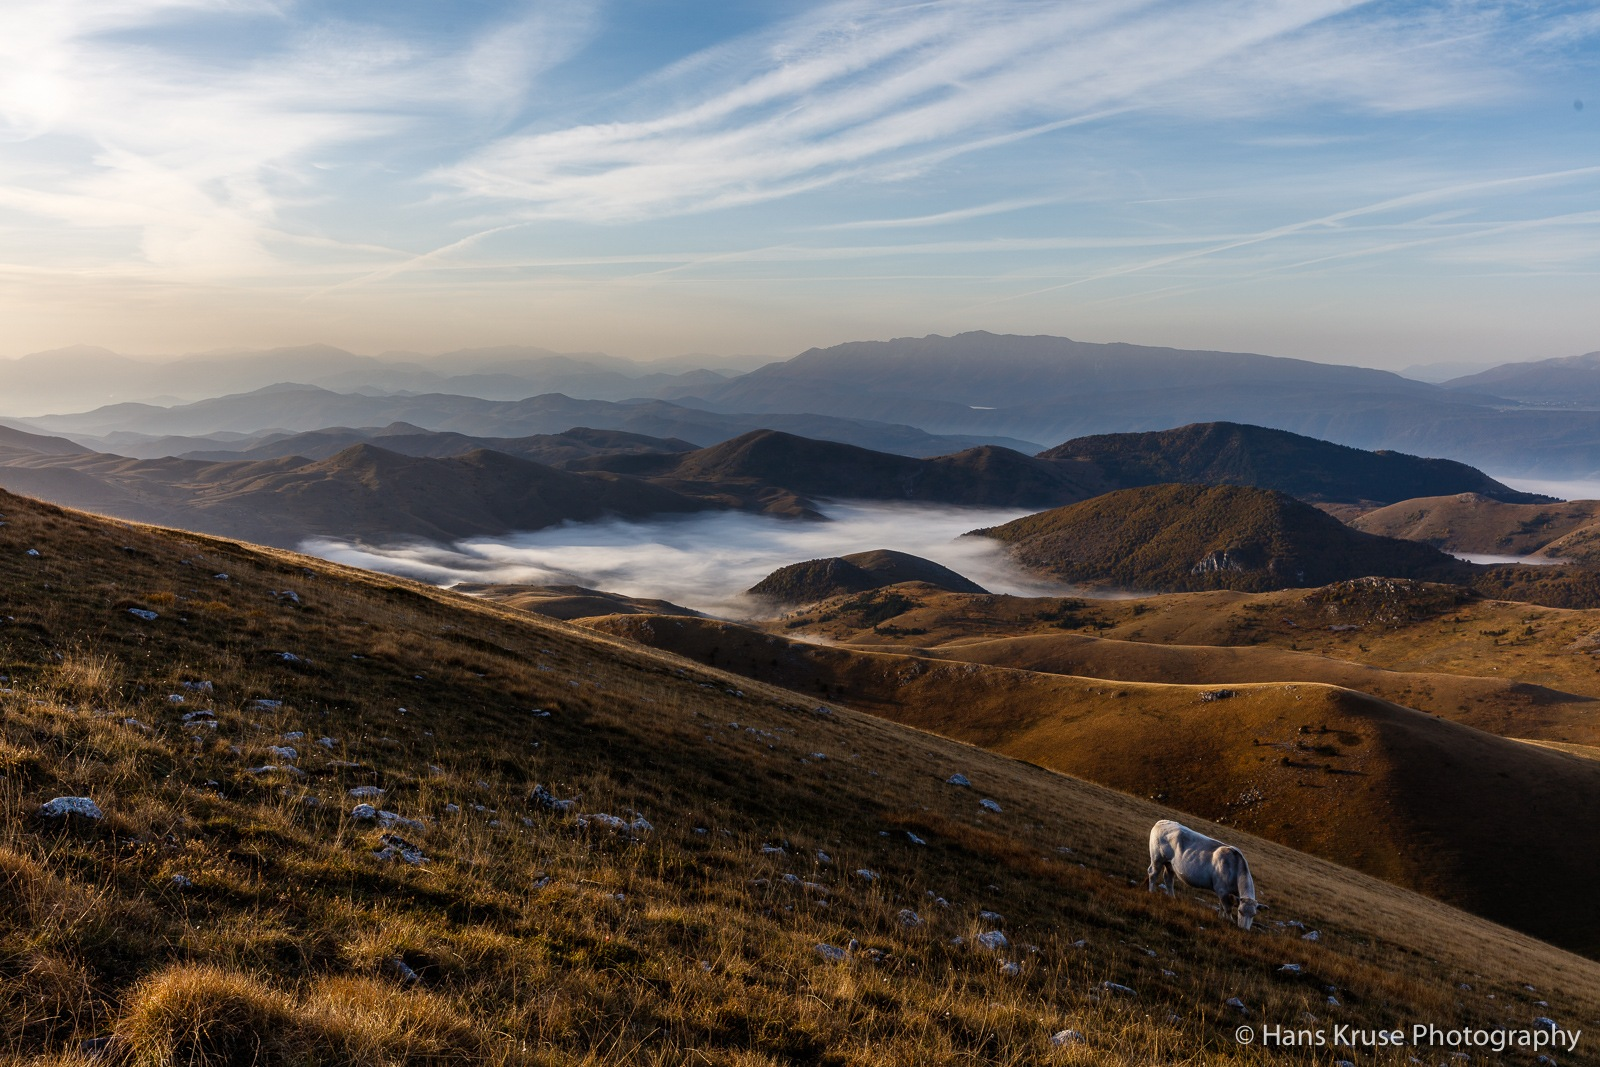 Morning light in Campo Imperatore by Hans Kruse